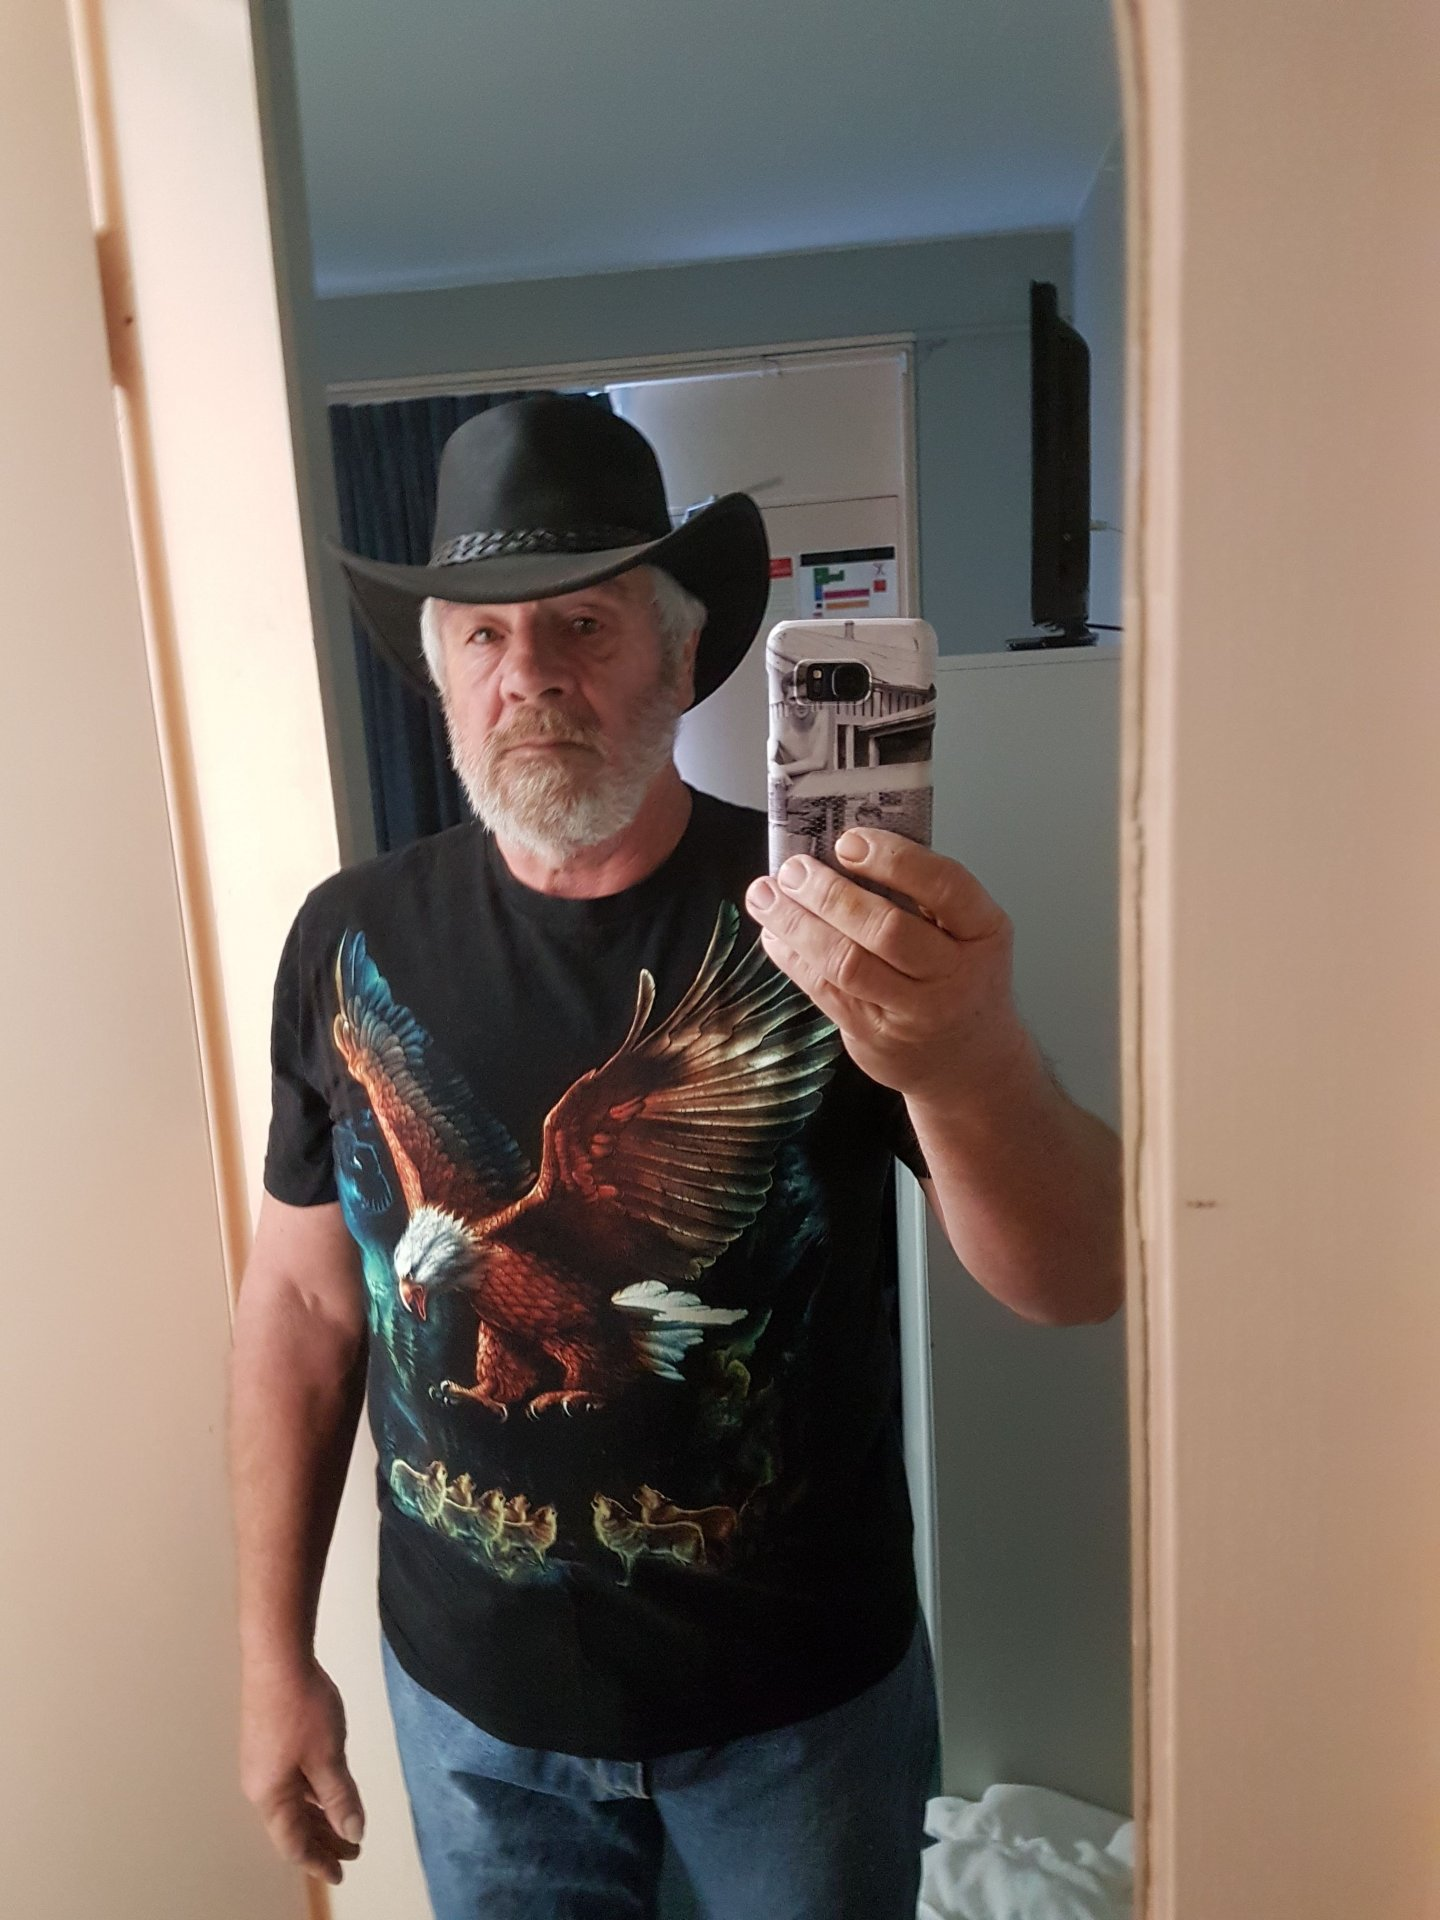 Lonely59man from New South Wales,Australia